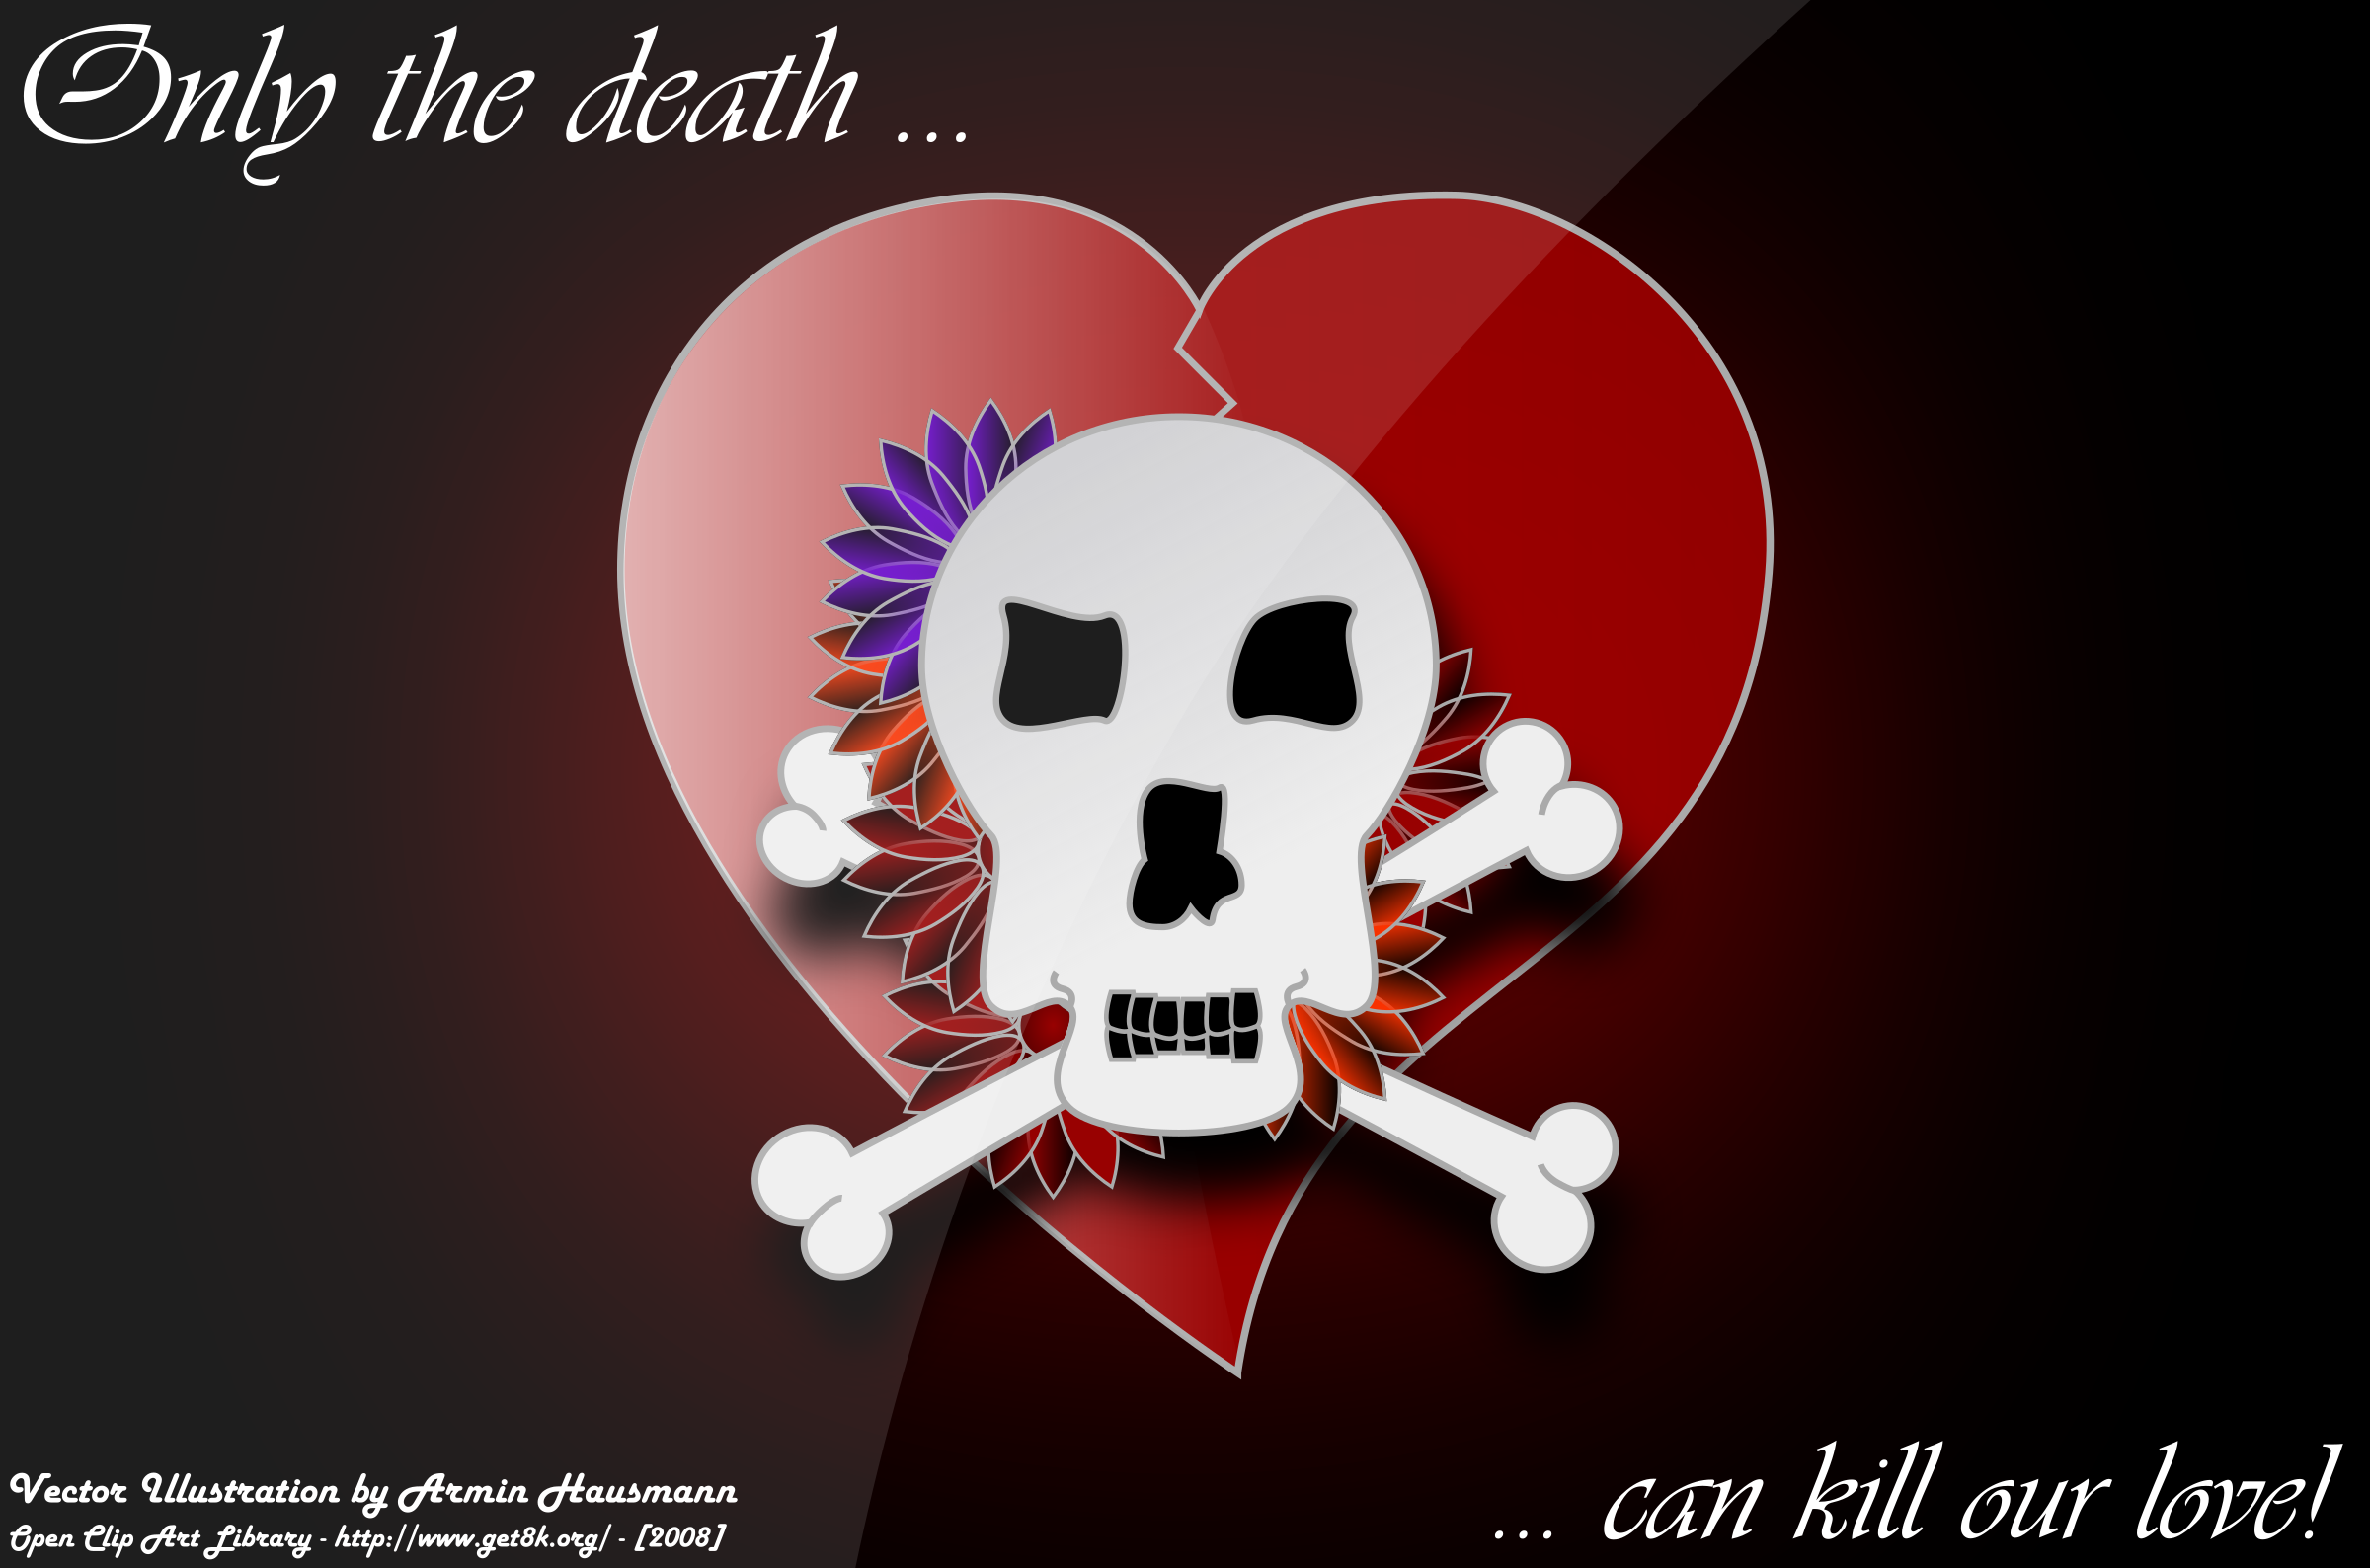 Only the death can kill our love! by get8k